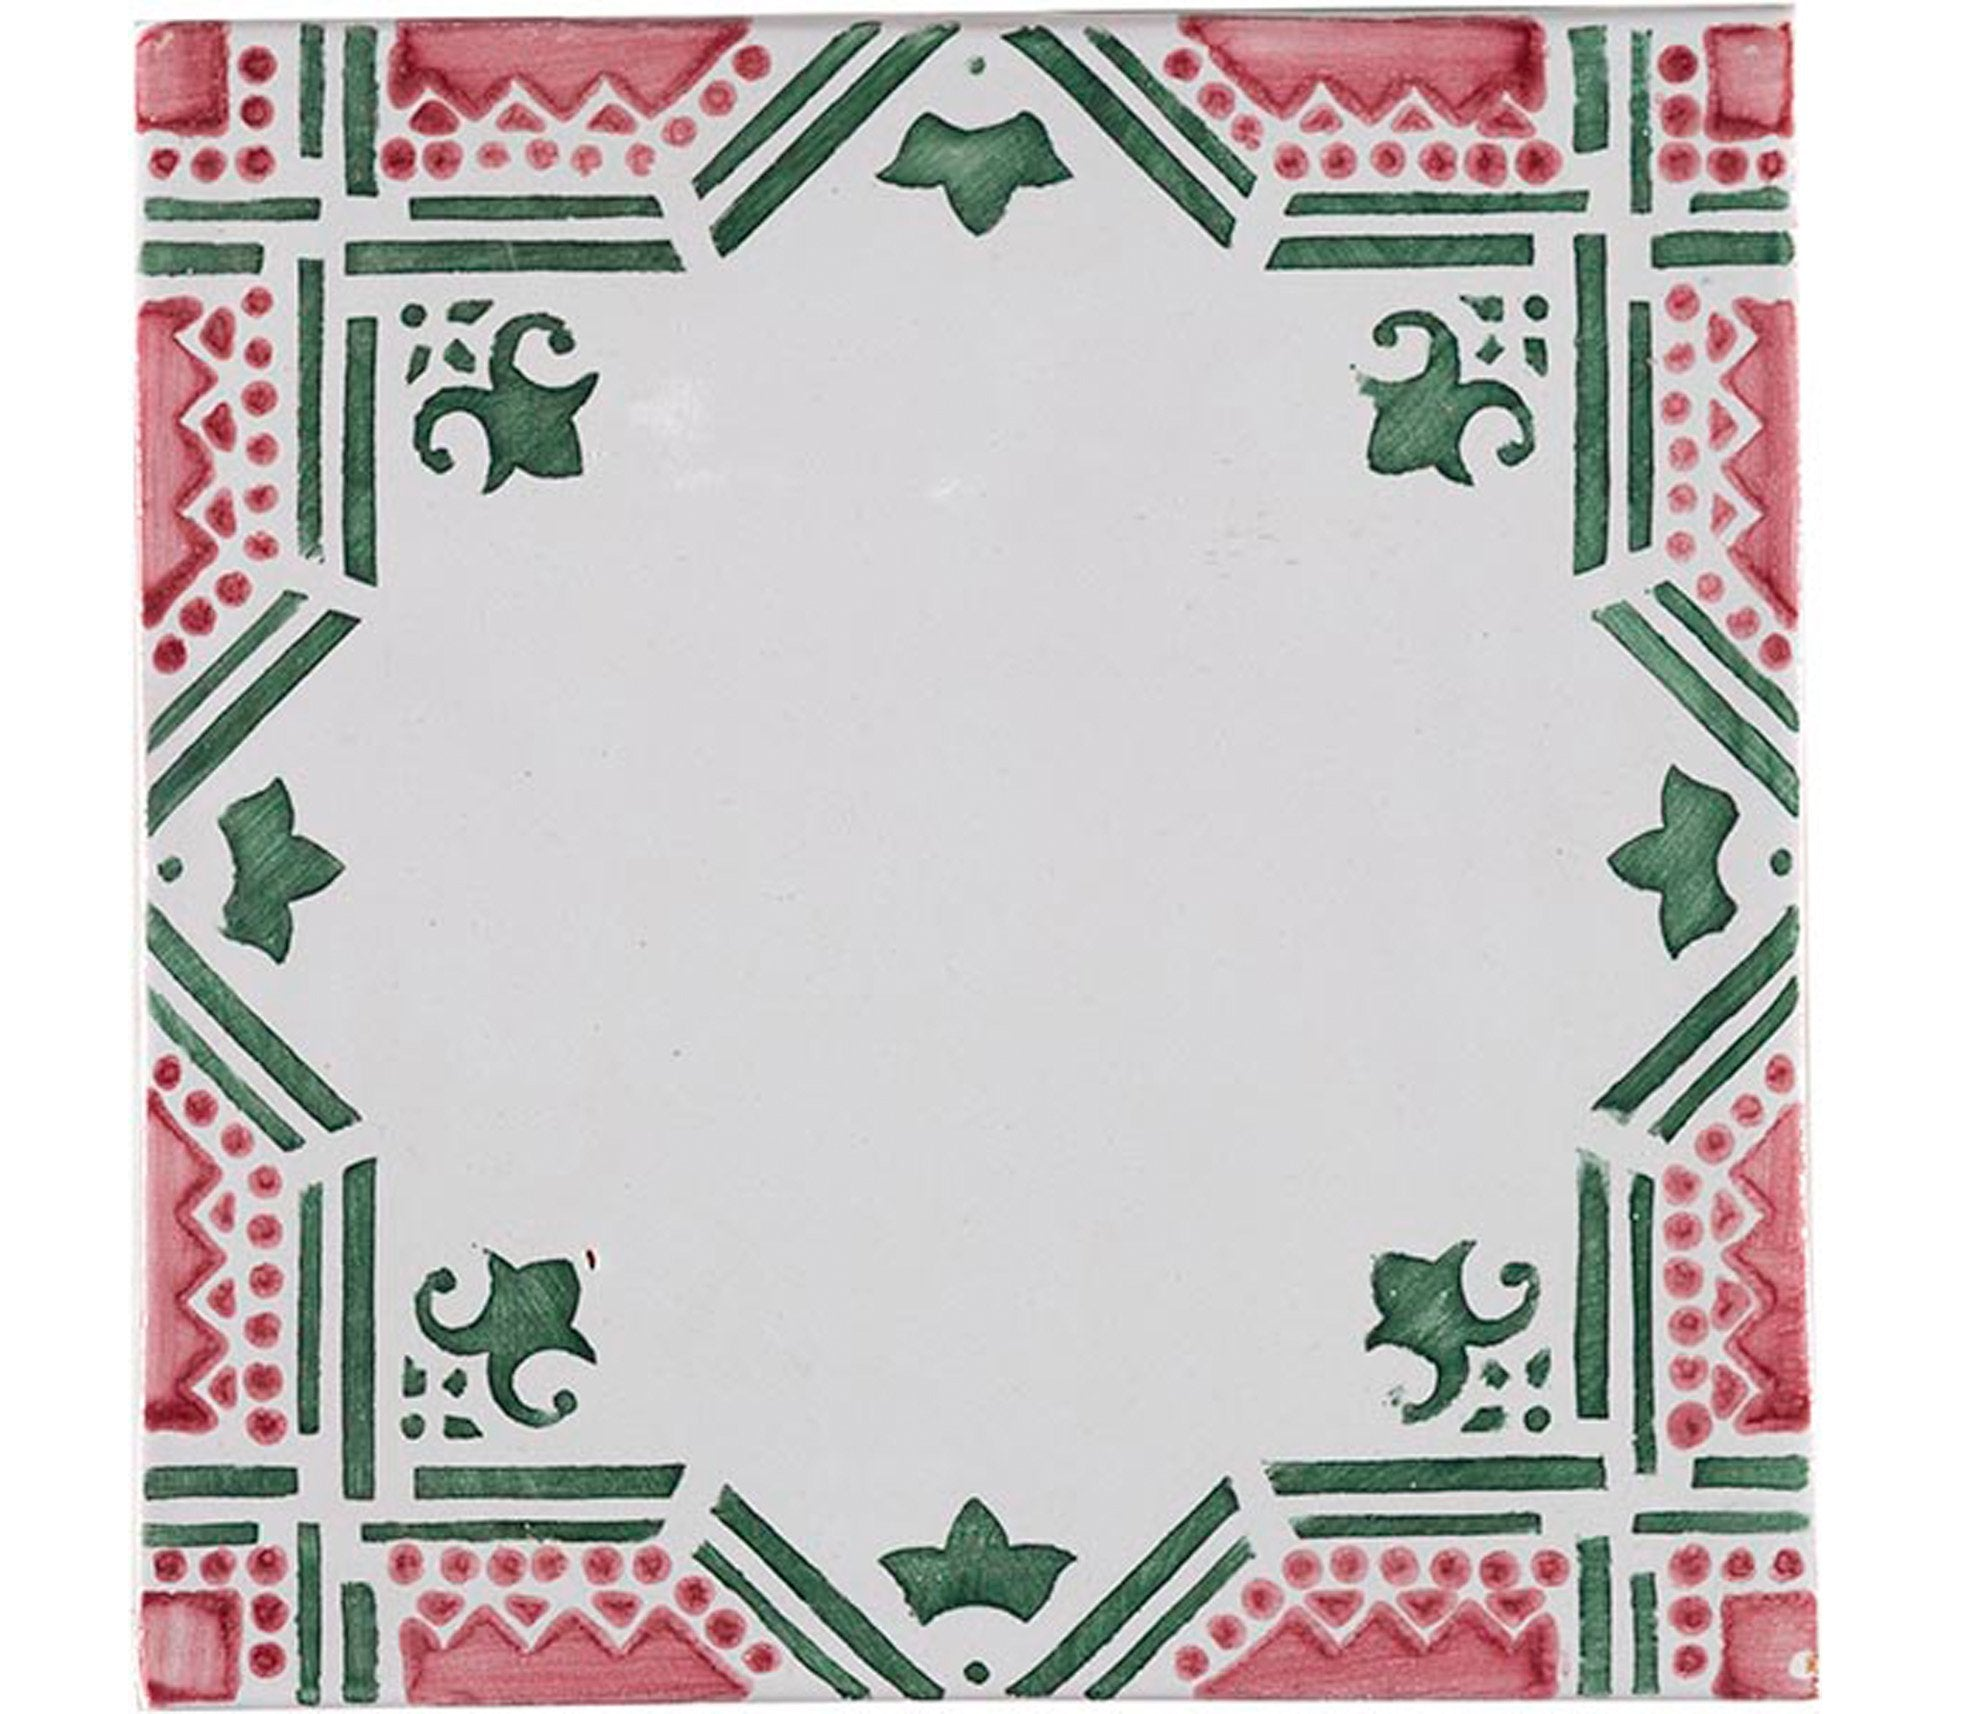 Series S Handpainted Tiles Product Image 29